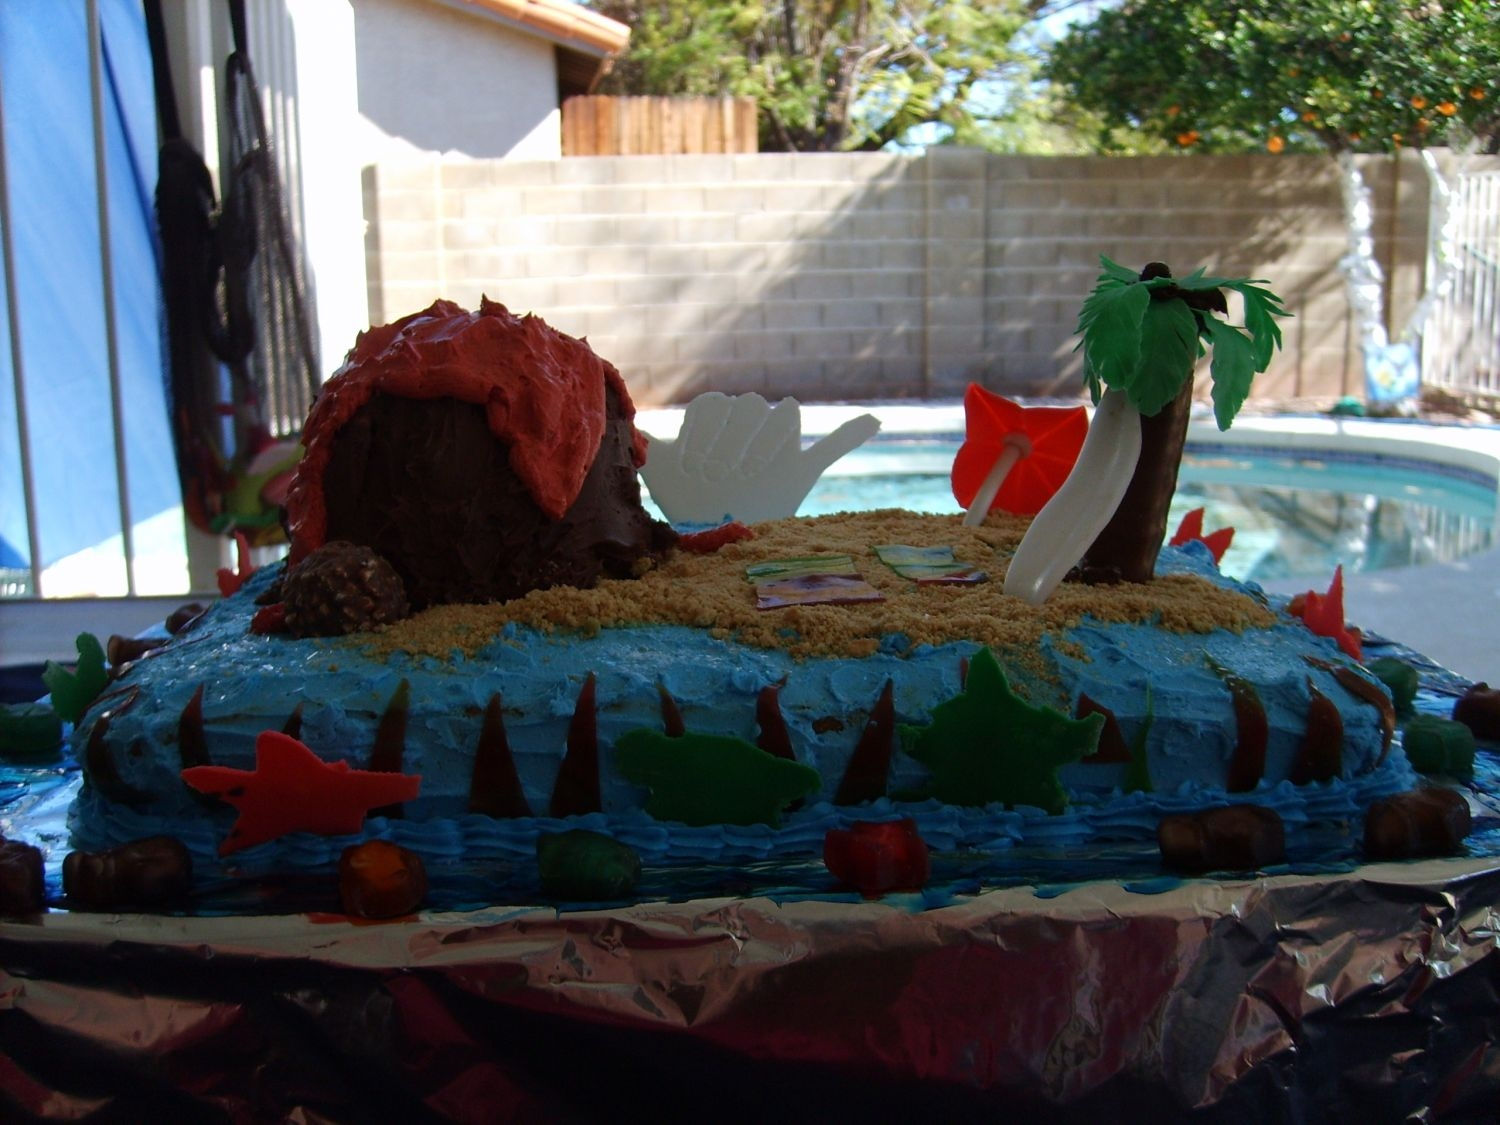 Hawaii Cake  My 8 yr old great nephew had to make a Hawaiian themed cake for Boy Scouts to be bid on to raise money for the troop. We pulled a few ideas...